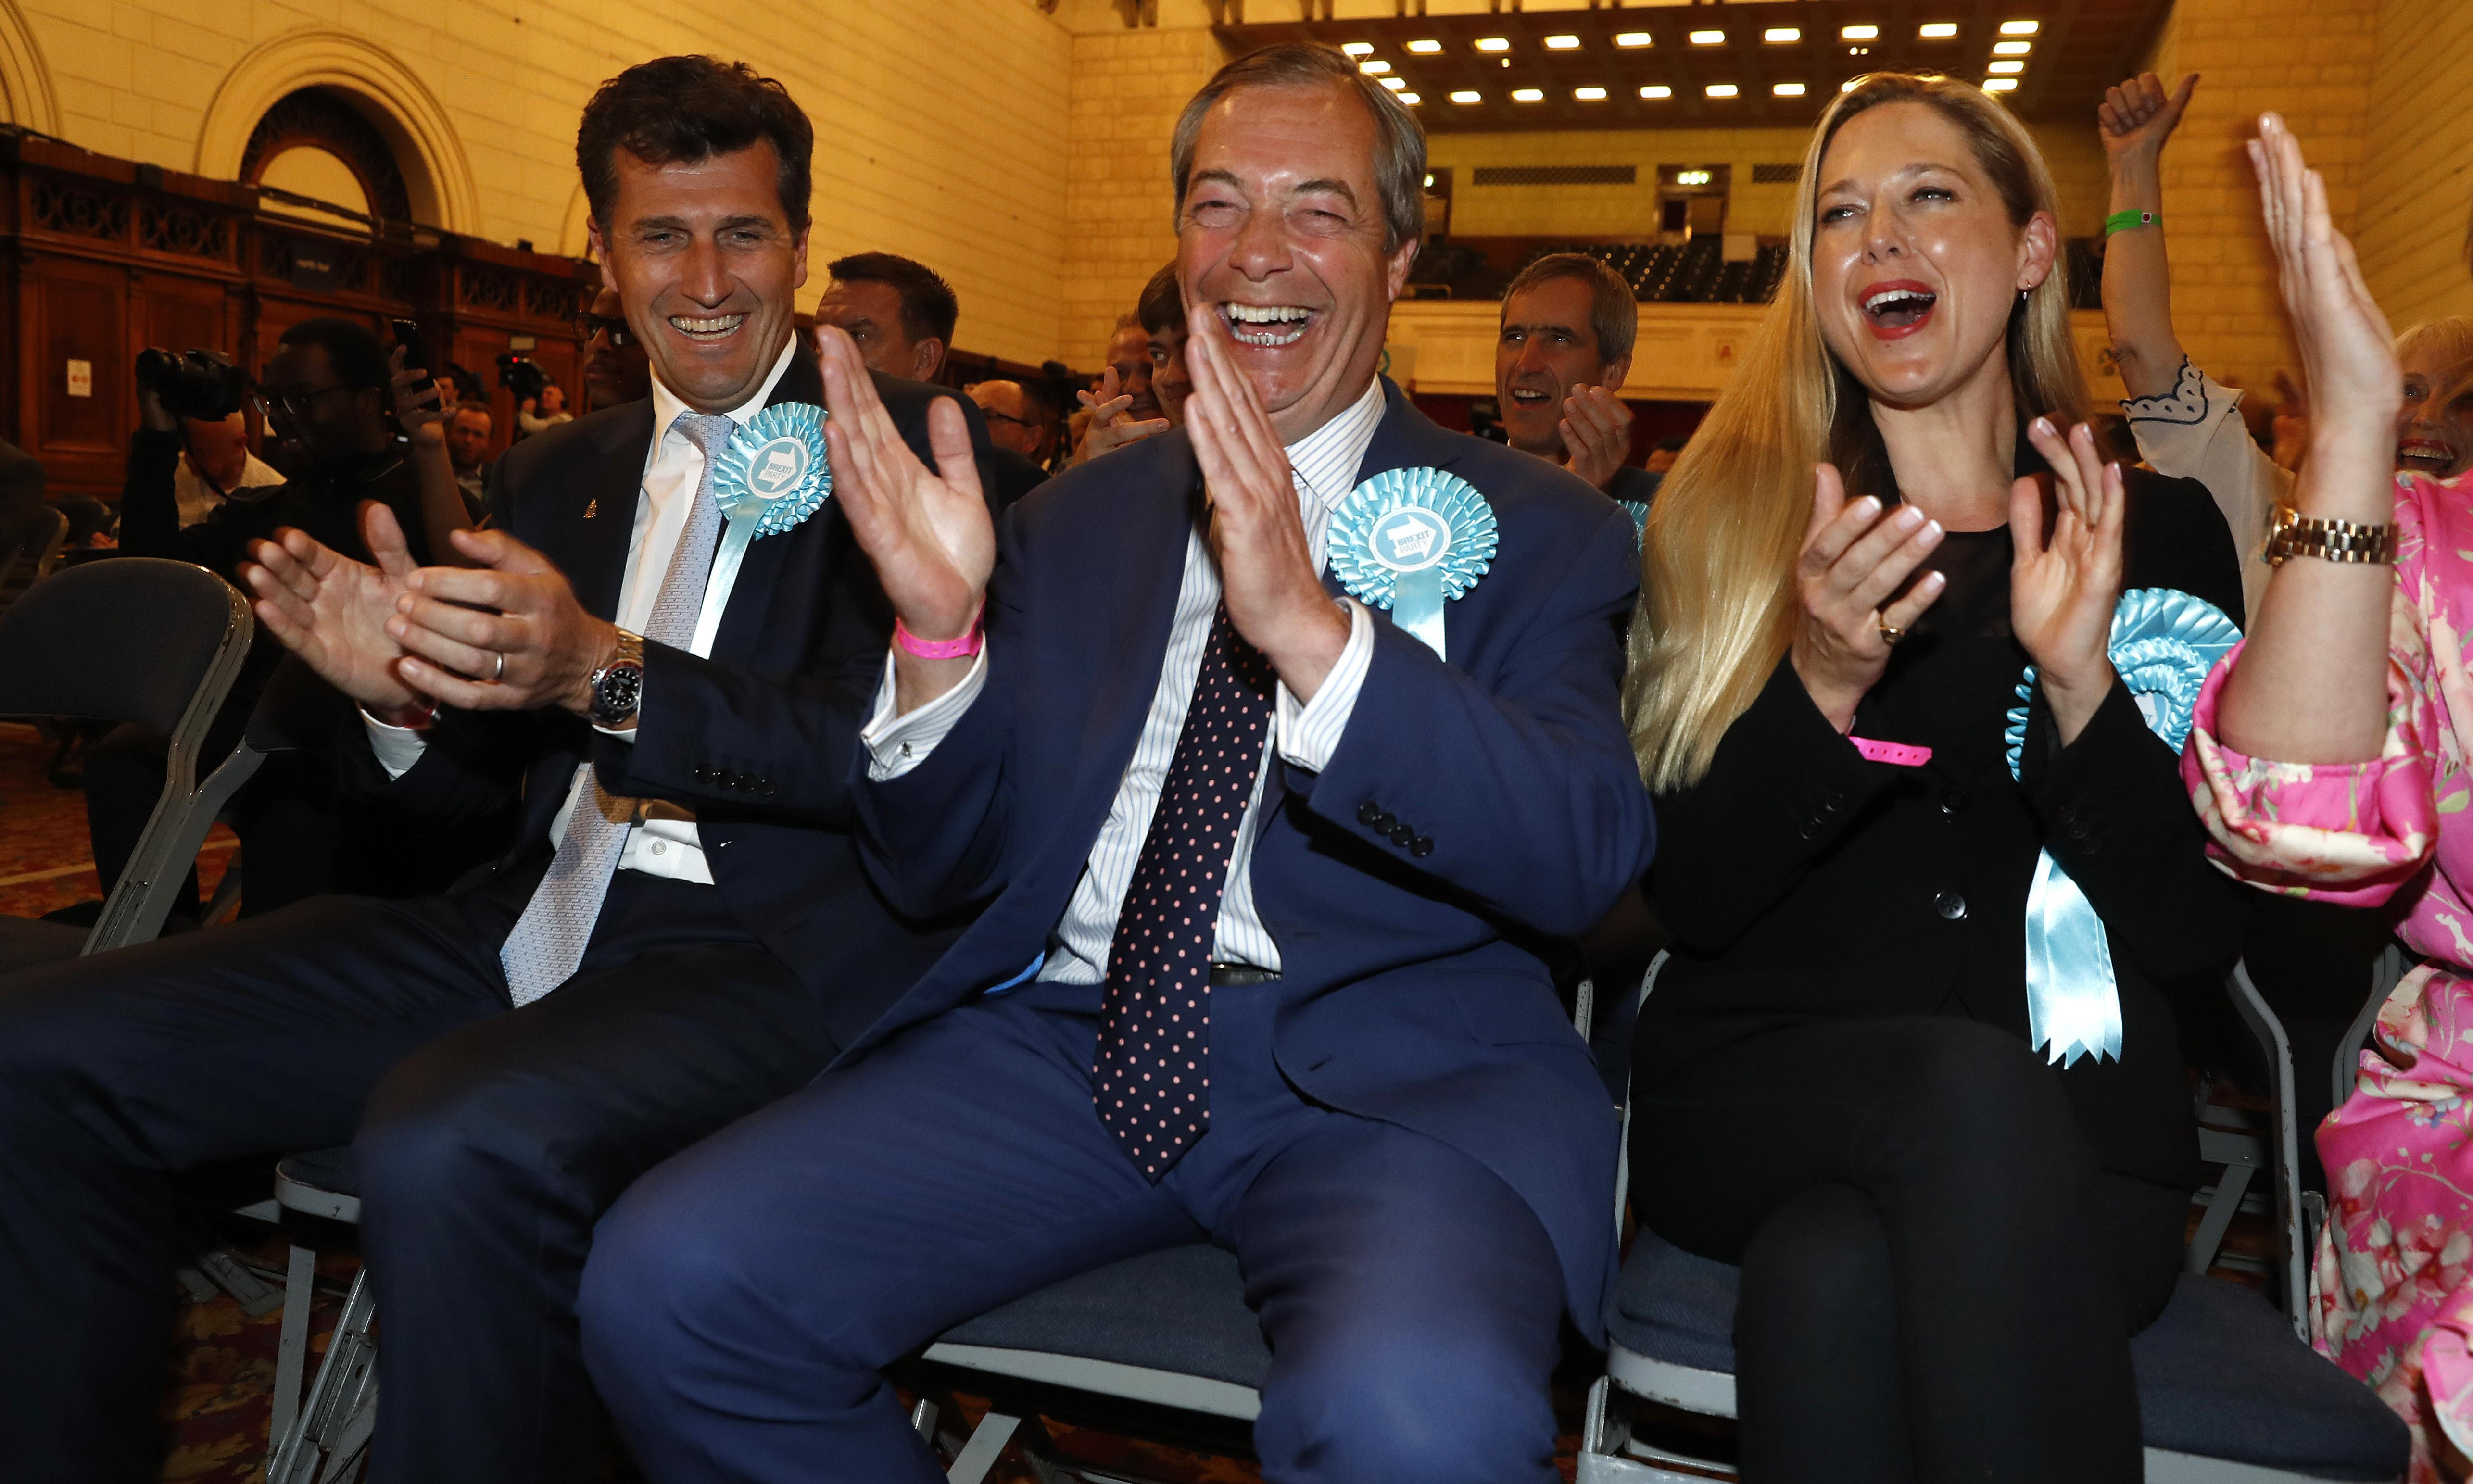 EU elections: Tories and Labour savaged as voters take Brexit revenge